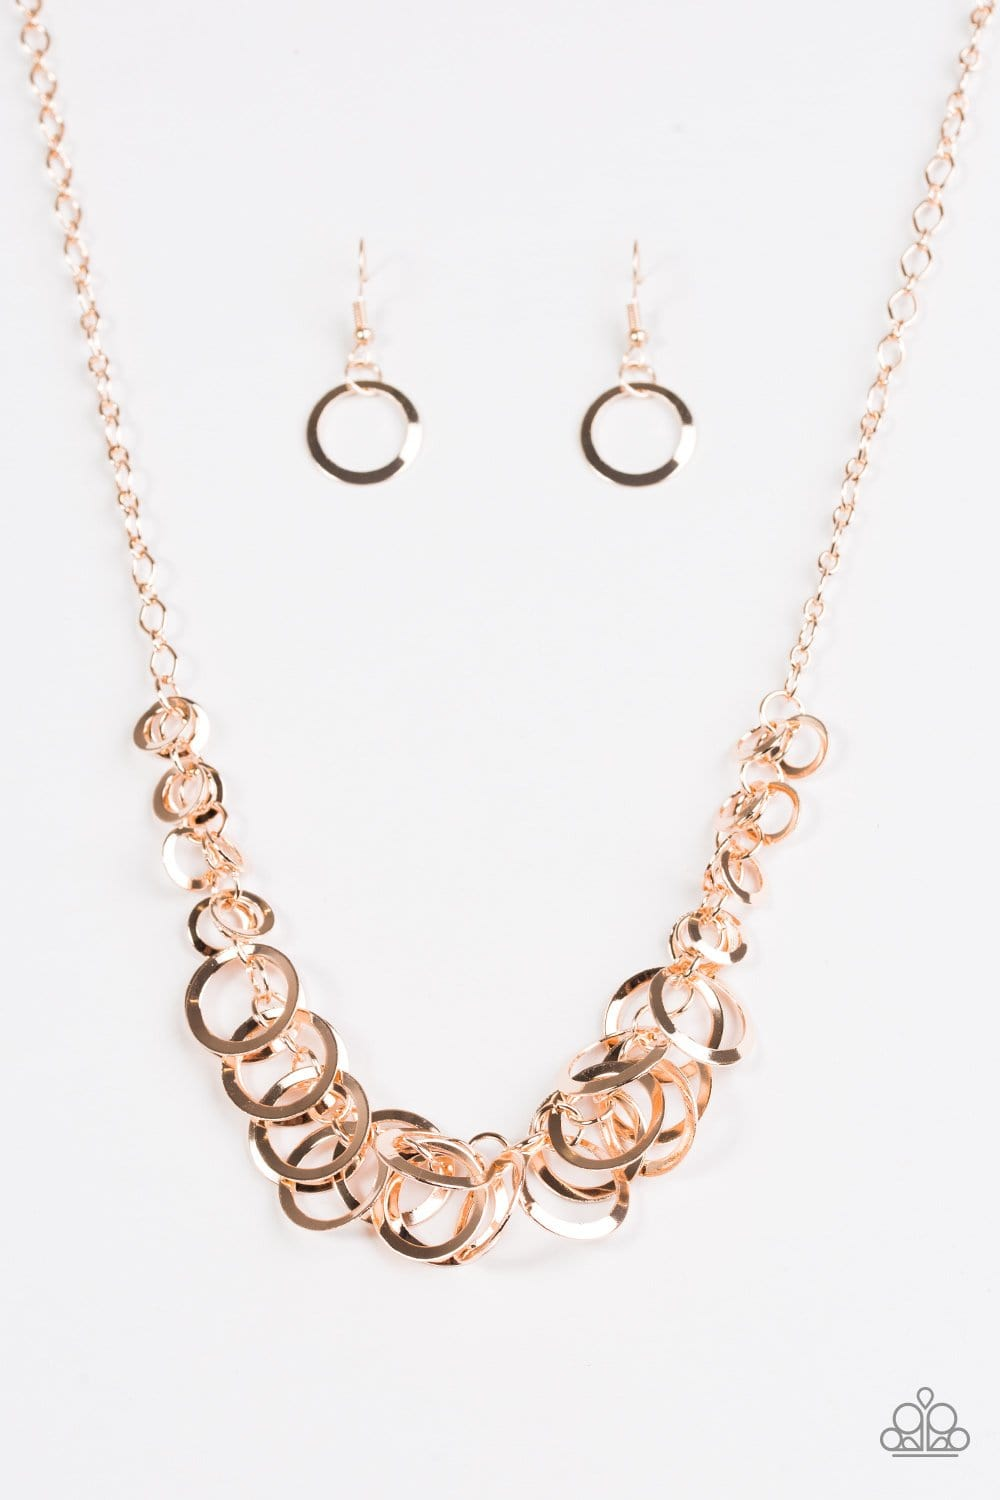 Royal Circus - Rose Gold - Jewels N' Thingz Boutique